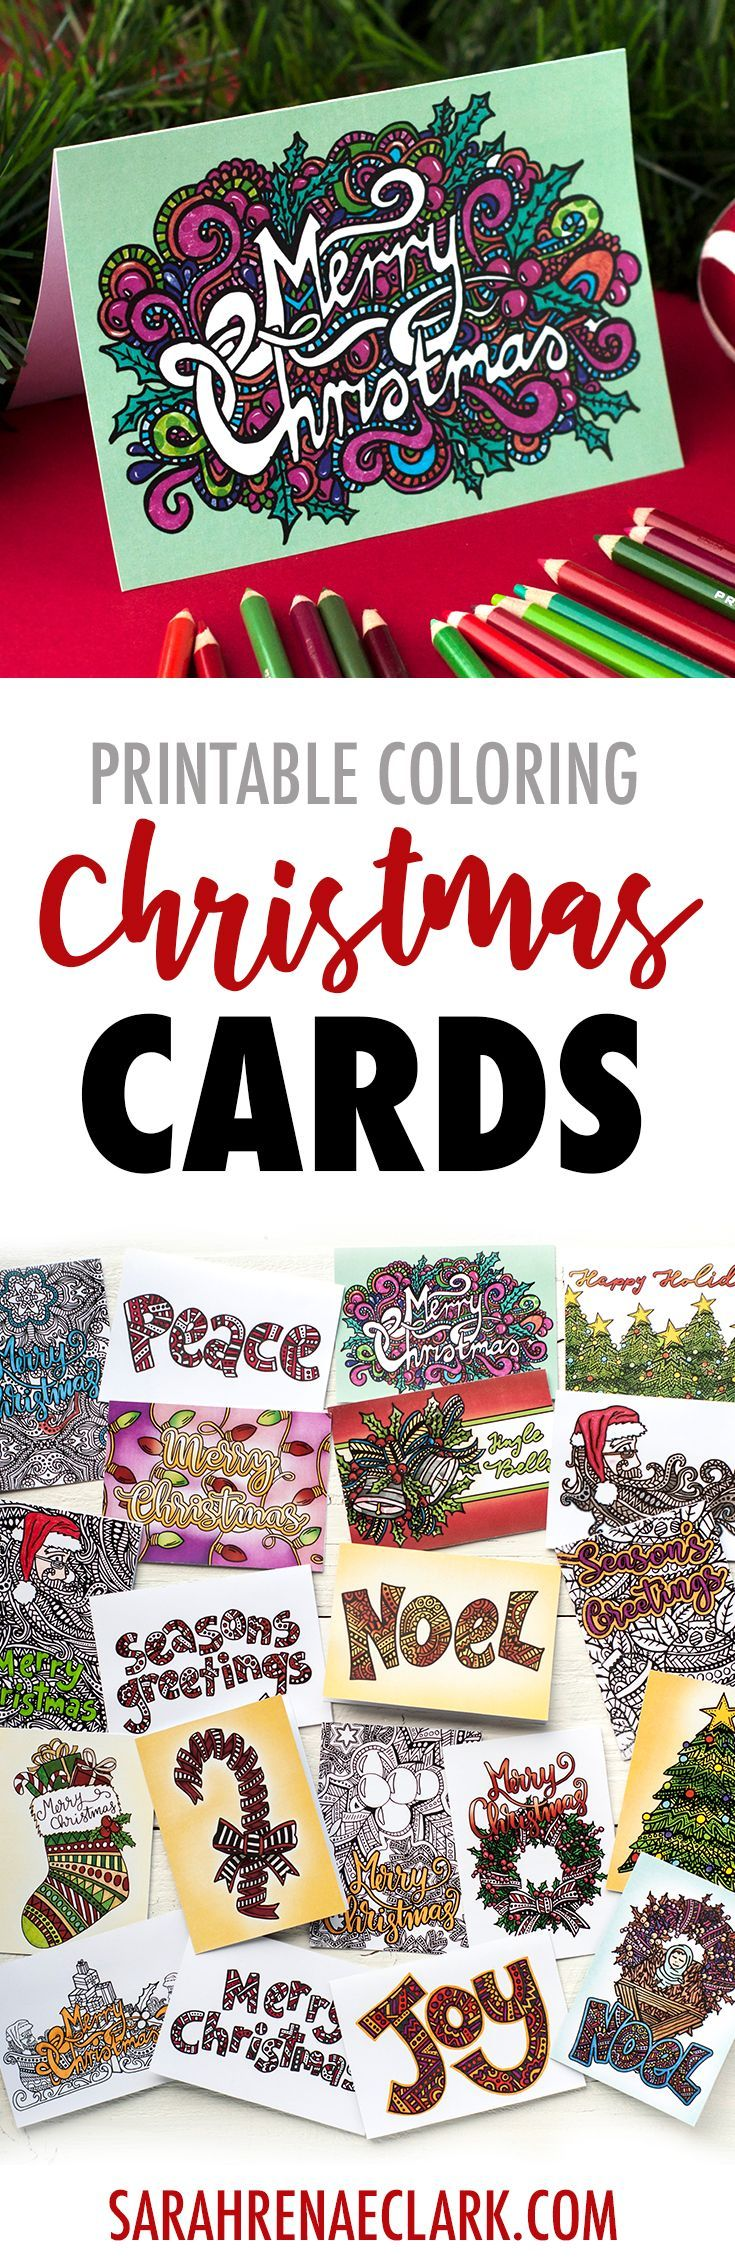 Color your own Christmas cards! 20 Printable coloring templates| Find more Christmas printable activities and coloring pages at www.sarahrenaeclark.com/christmas